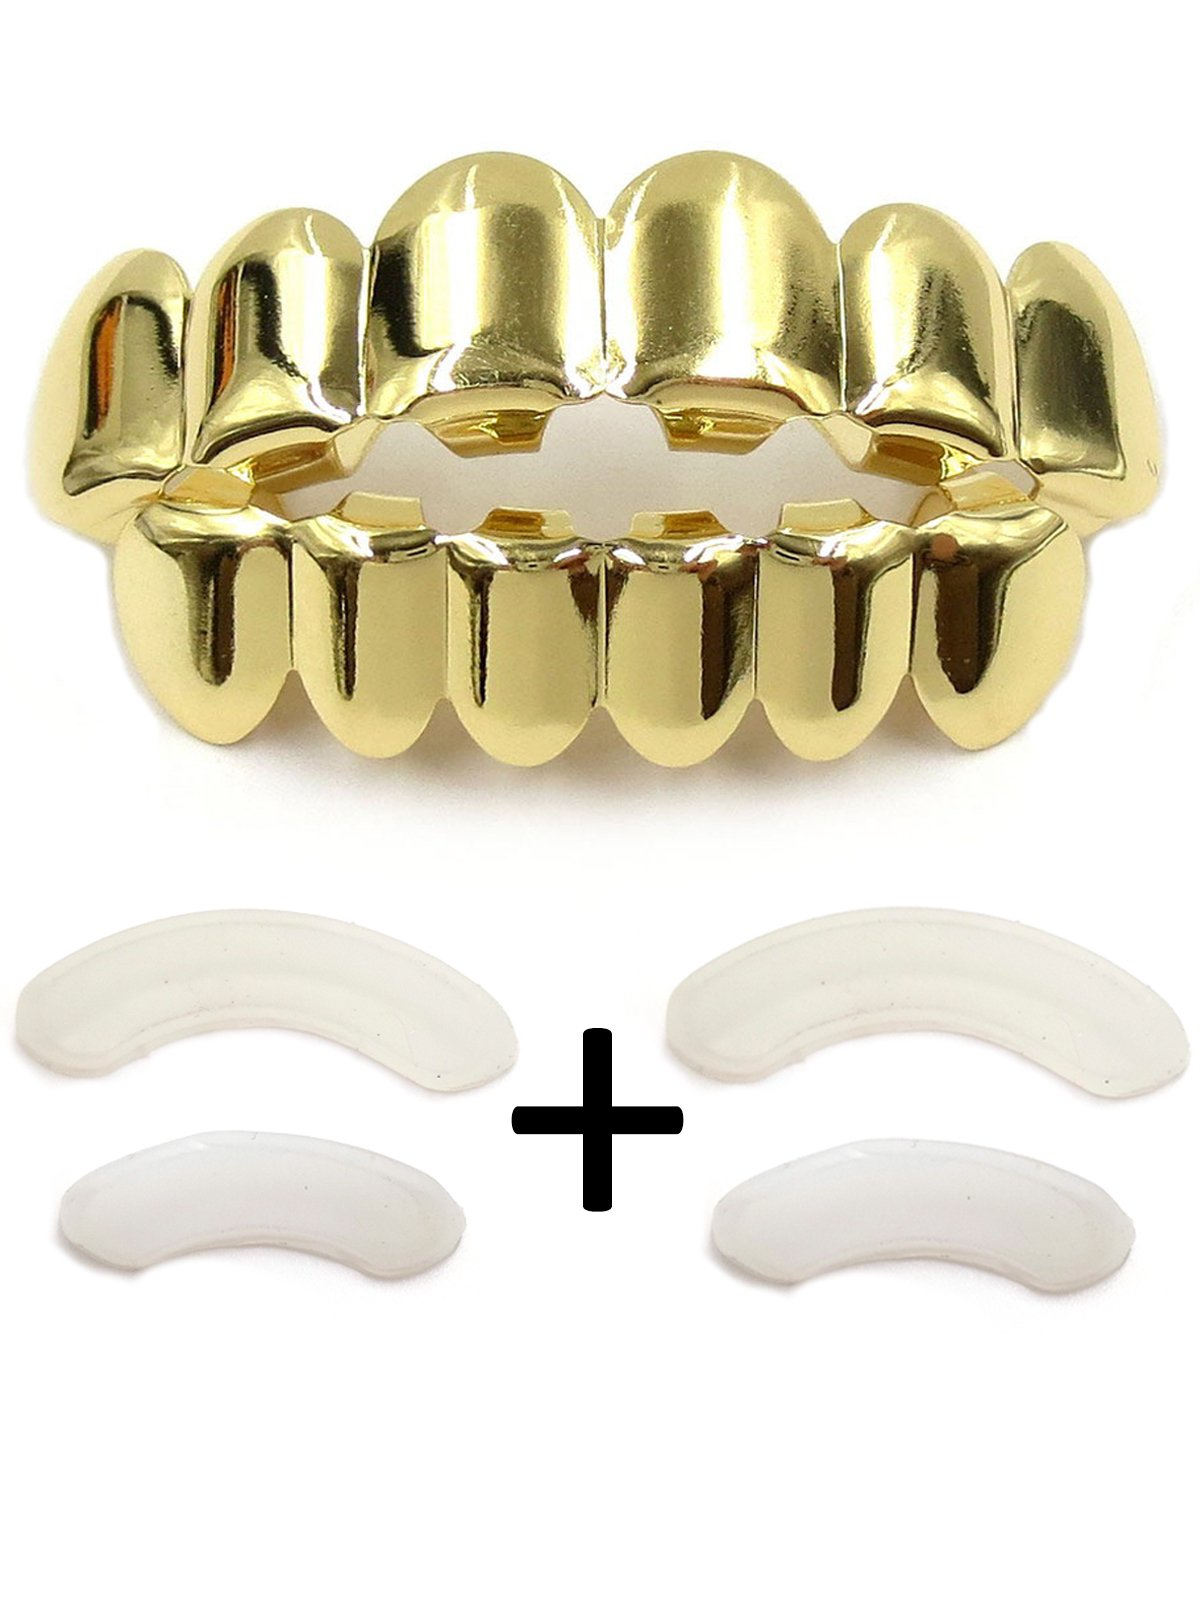 TSANLY Gold Grillz - New Custom Fit 24k Gold Grillz Plated Tooth Grills fit Mouth Caps Top & Bottom Grill Set Grills Son